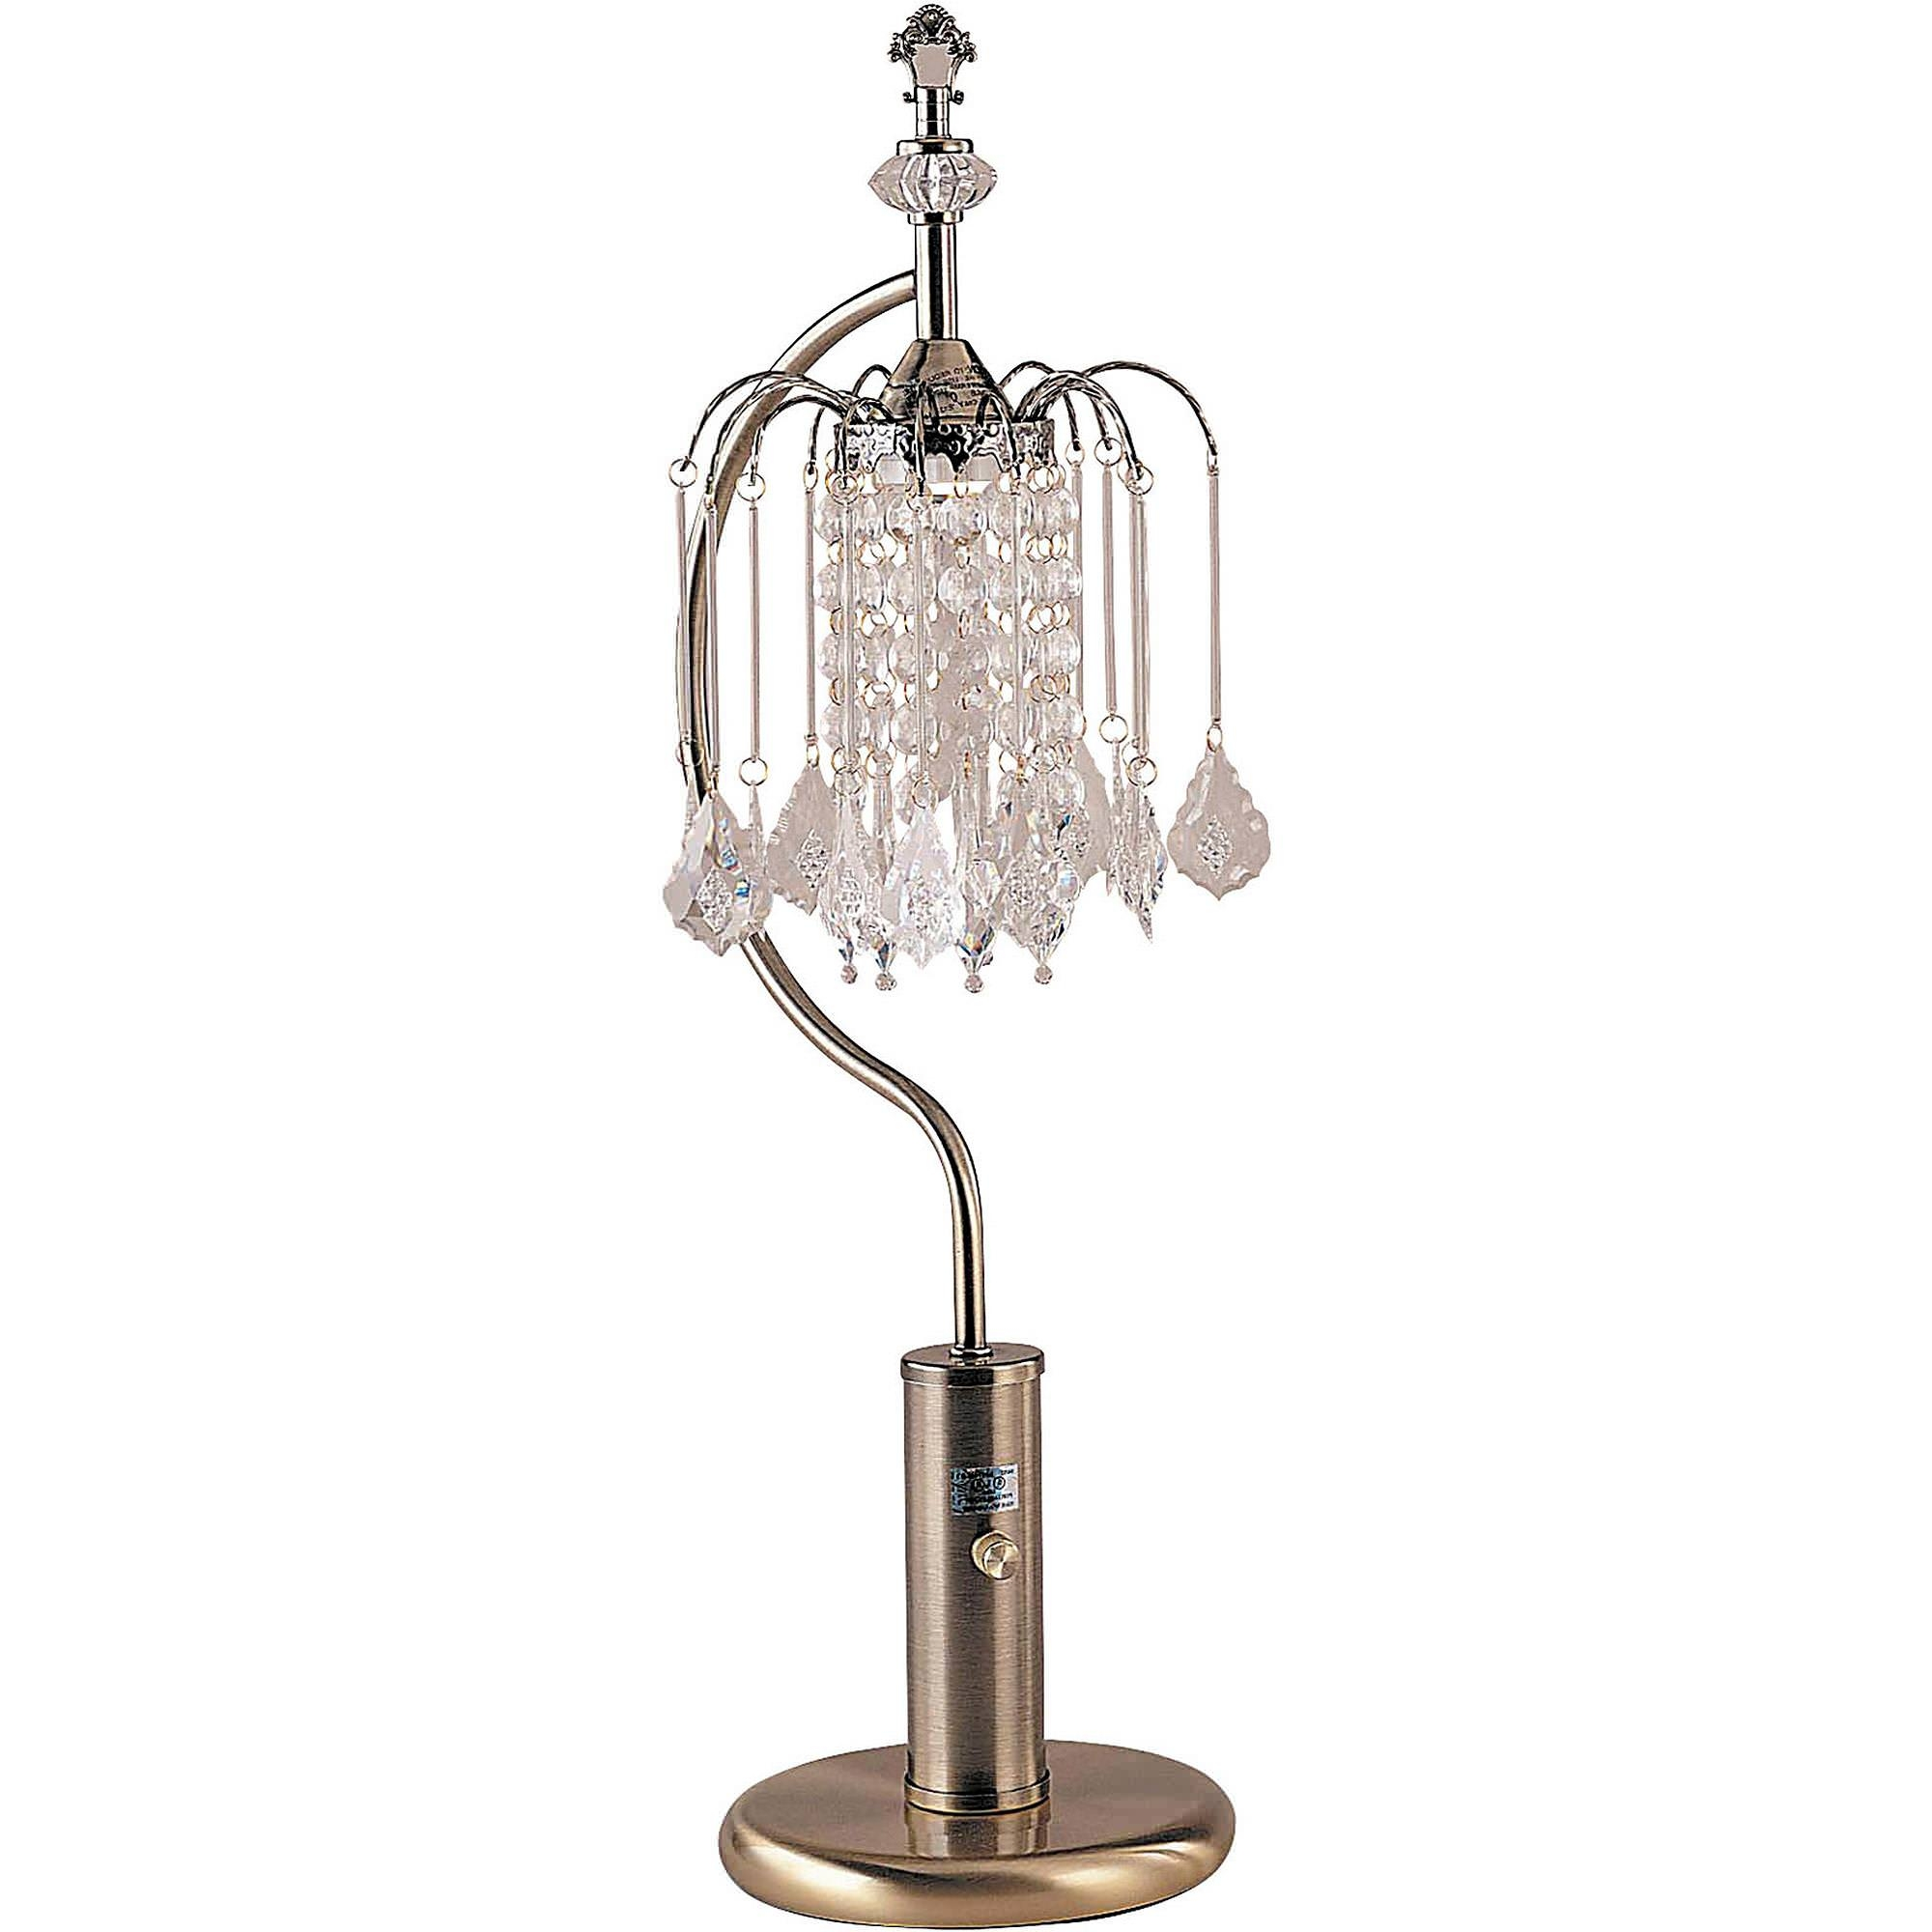 Black Table Lamp Chandelier Madison Brightech Floor Lamp With Within Table Chandeliers (View 11 of 15)